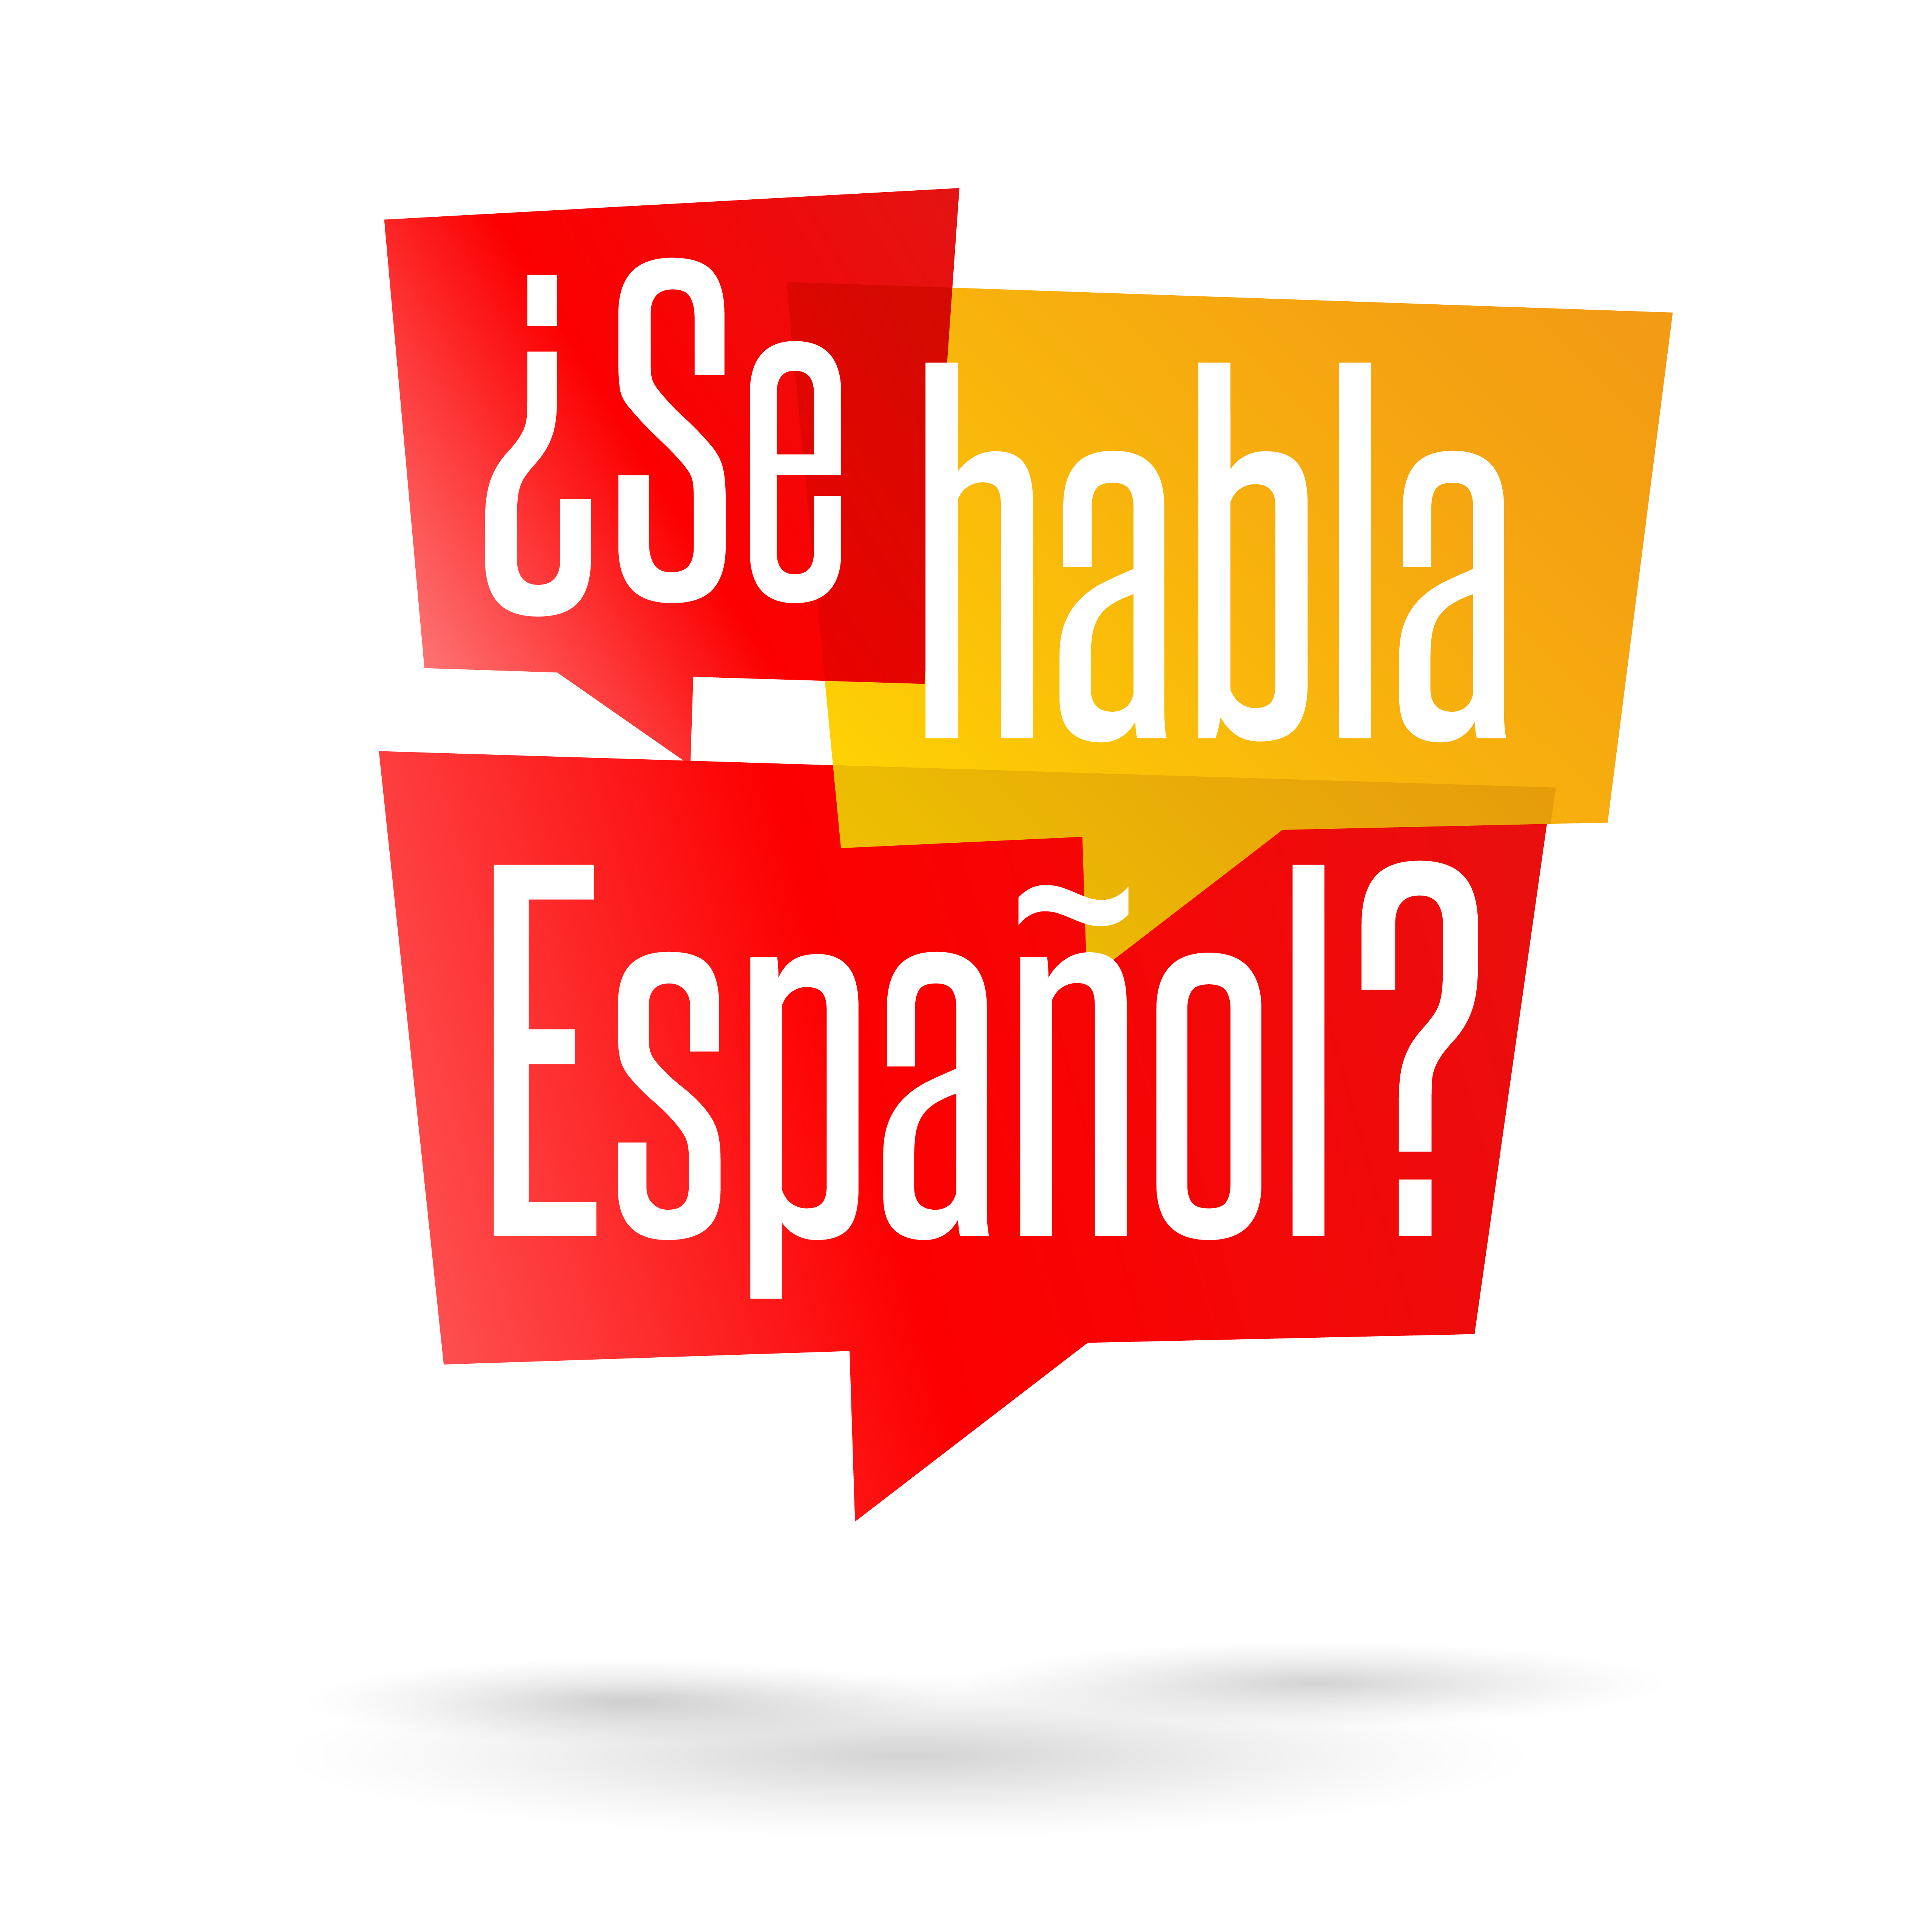 #3. For many, learning Spanish is rapidly becoming a business necessity. - PNG Espanol